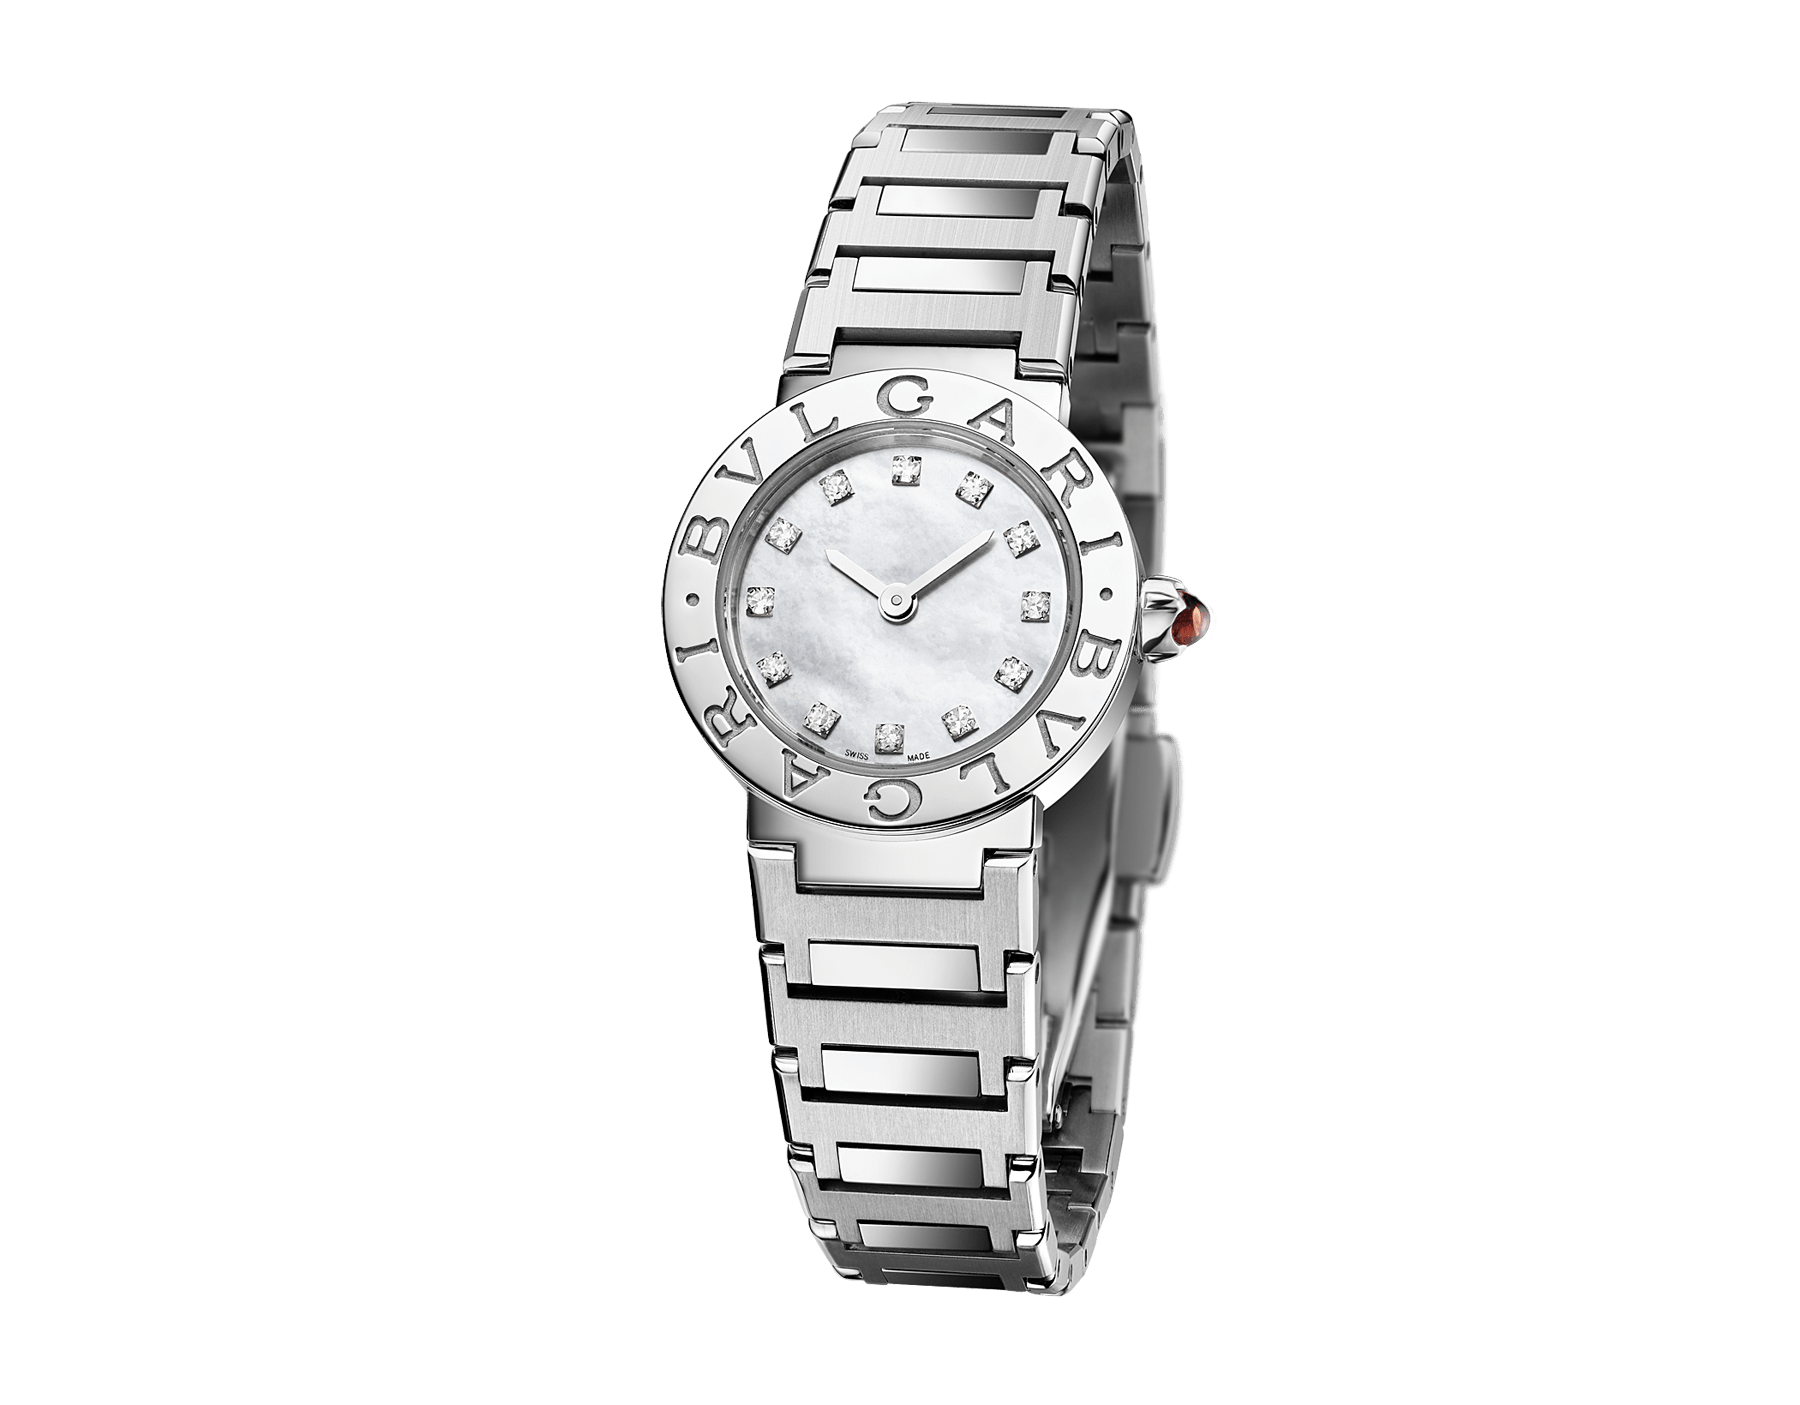 BVLGARI BVLGARI LADY watch in stainless steel case and bracelet, stainless steel bezel engraved with double logo, white mother-of-pearl dial and diamond indexes 103095 image 2